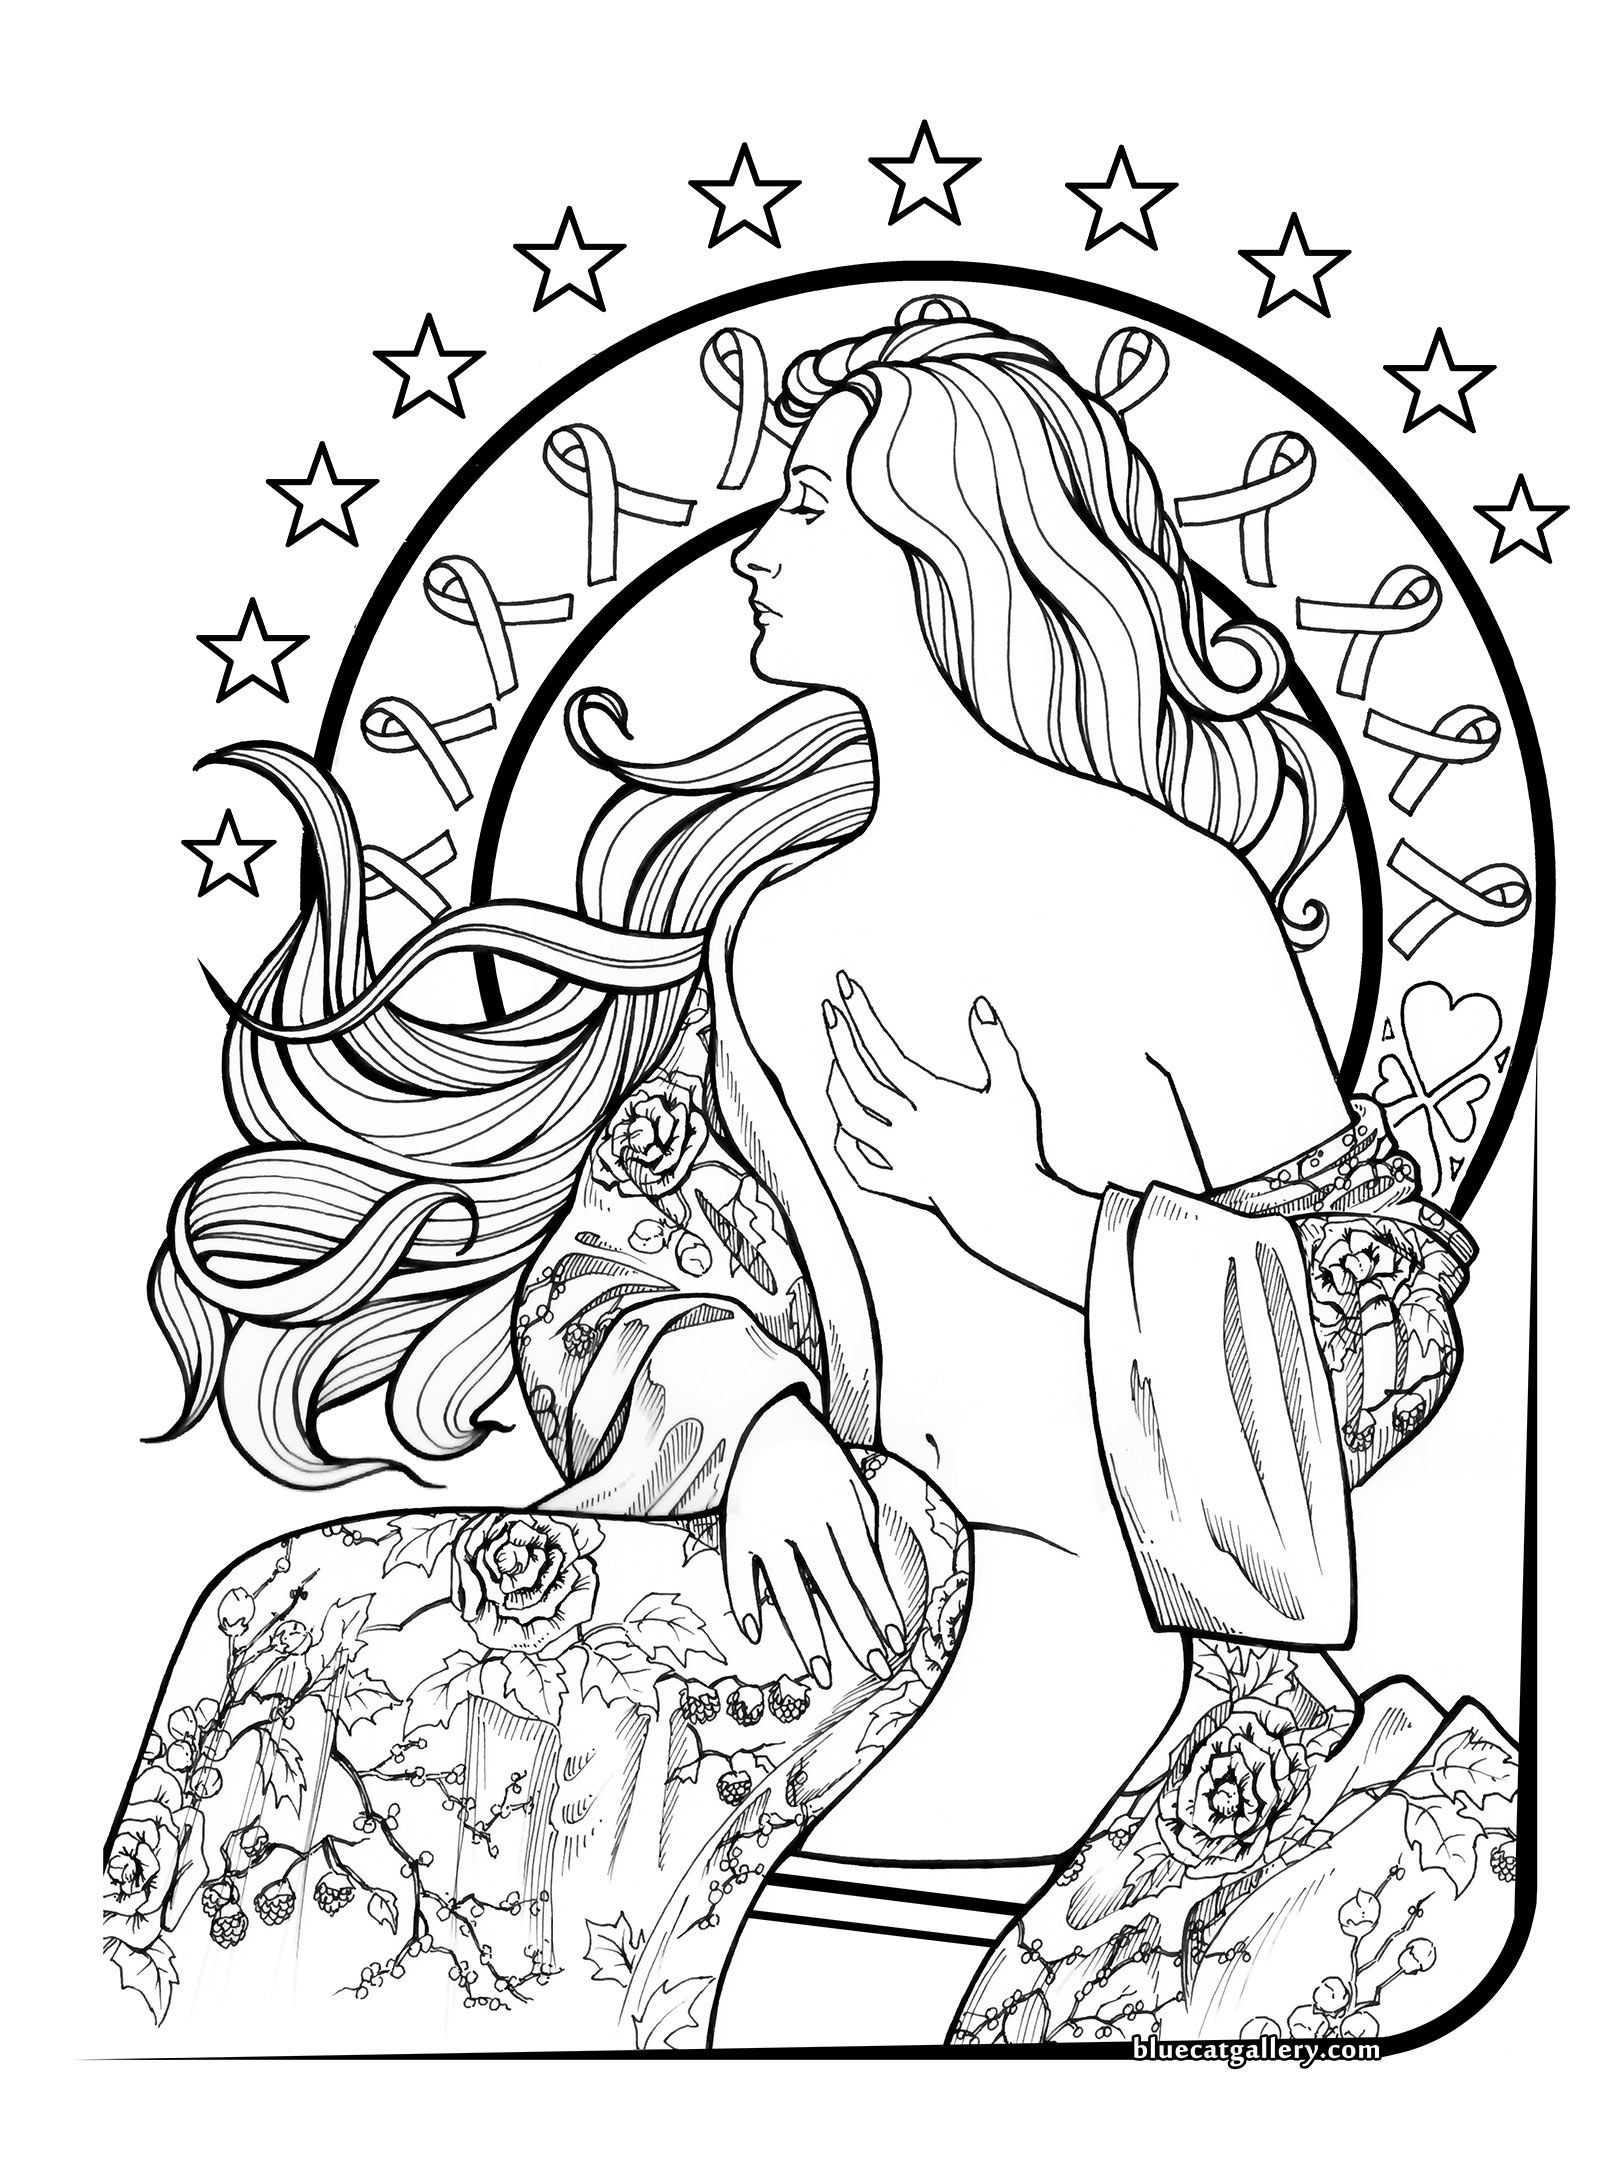 Coloring book pages pinterest -